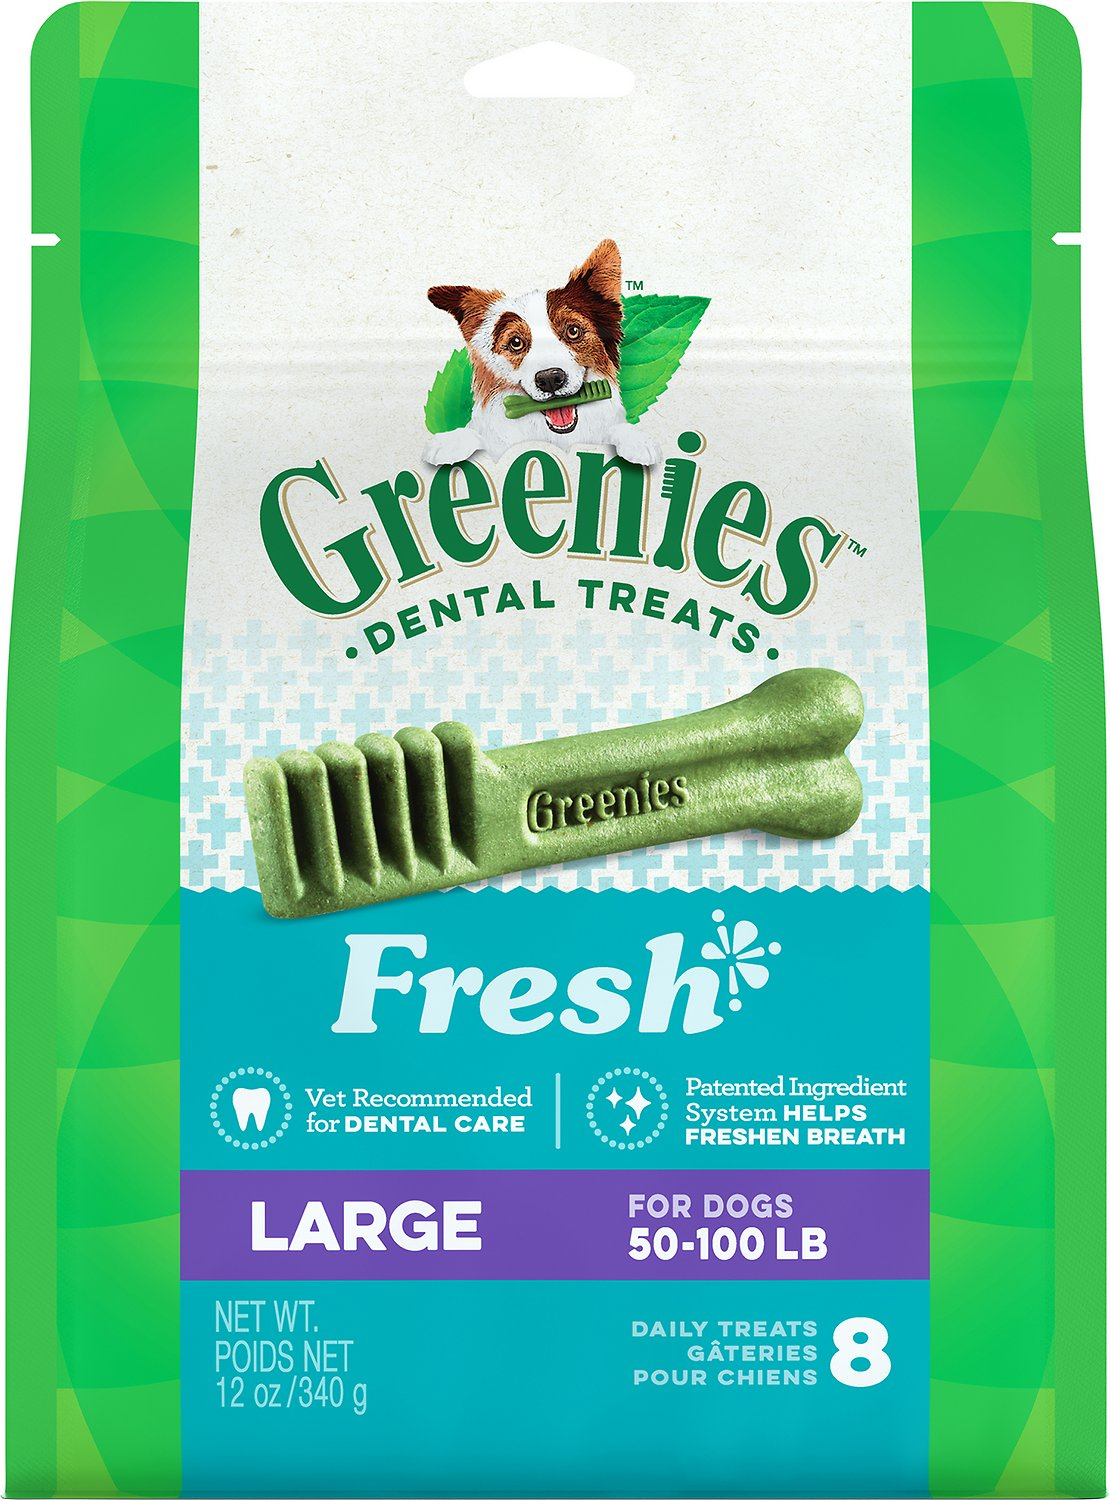 Greenies Fresh Large Dental Dog Treats, 8-count (Weights: 12-oz, Size: 8-count) Image